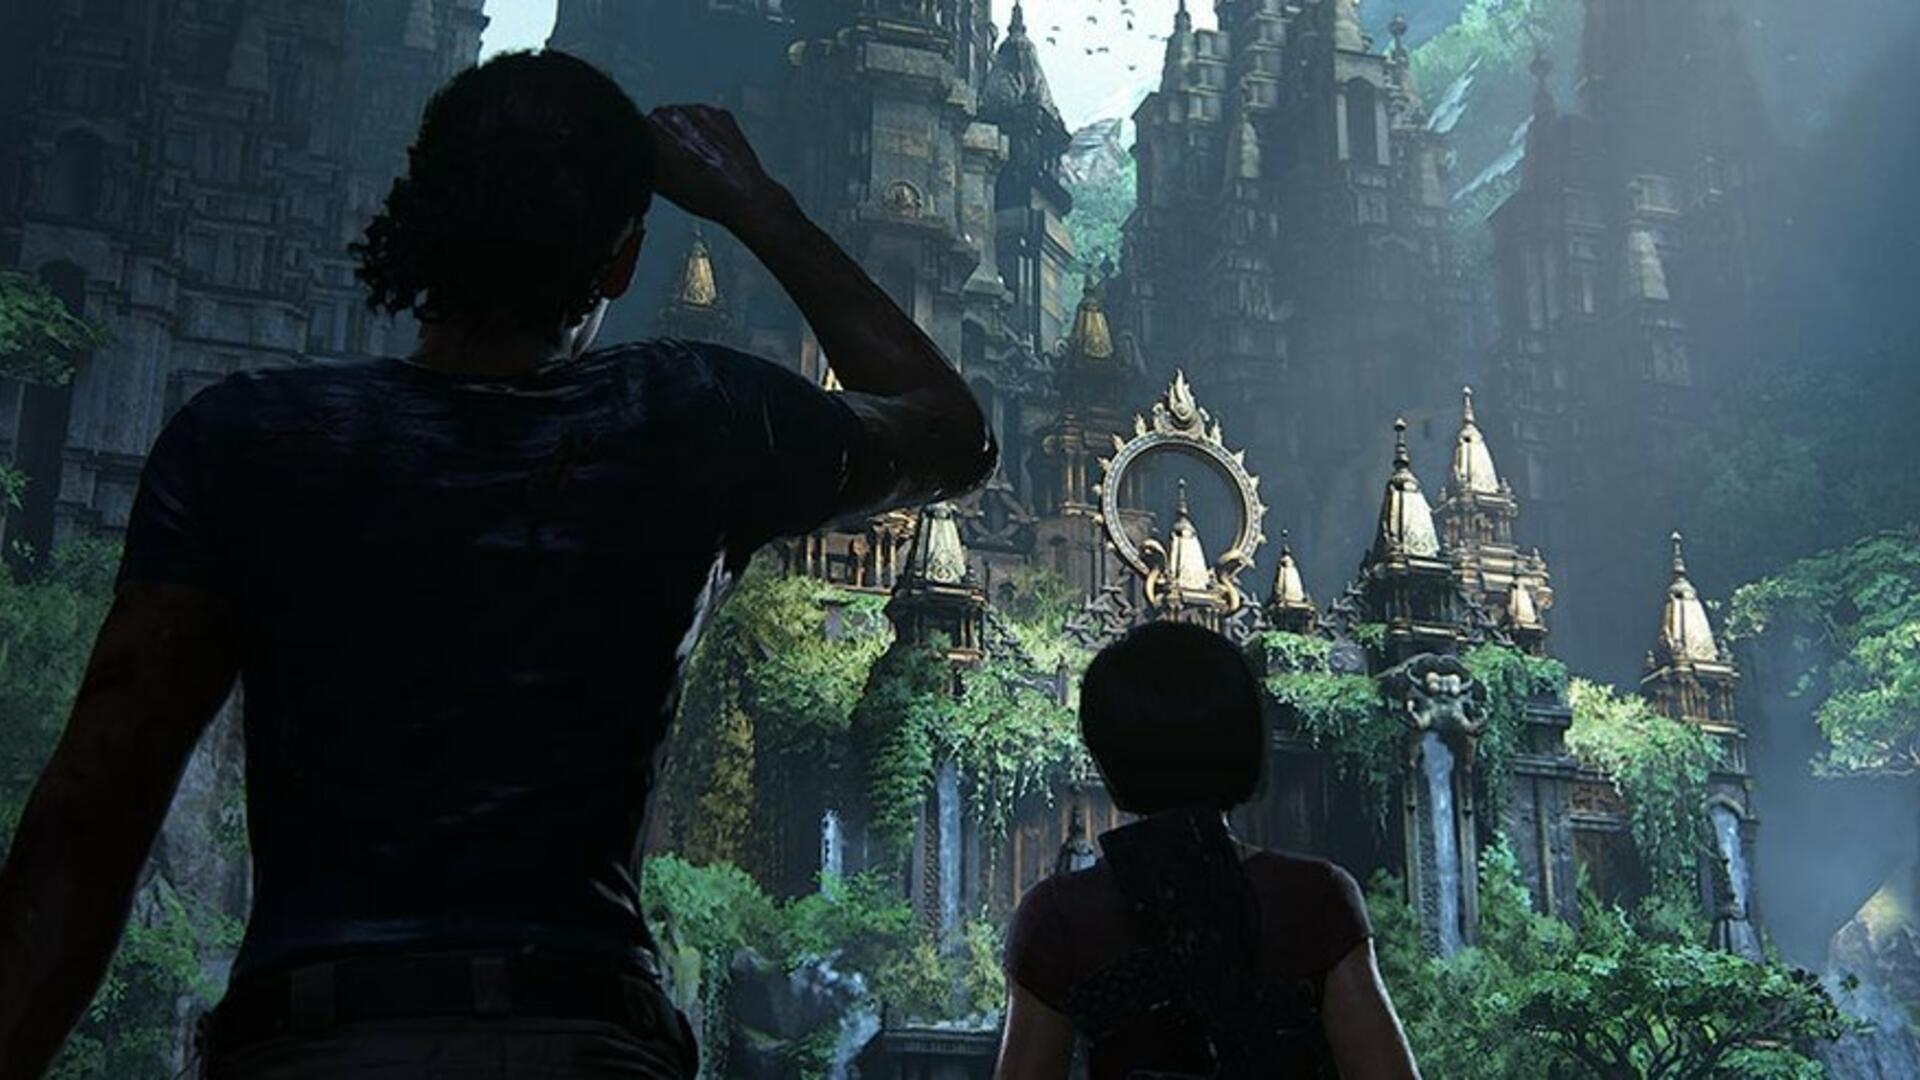 Uncharted: The Lost Legacy Axe Statue Puzzles - Chapter 4